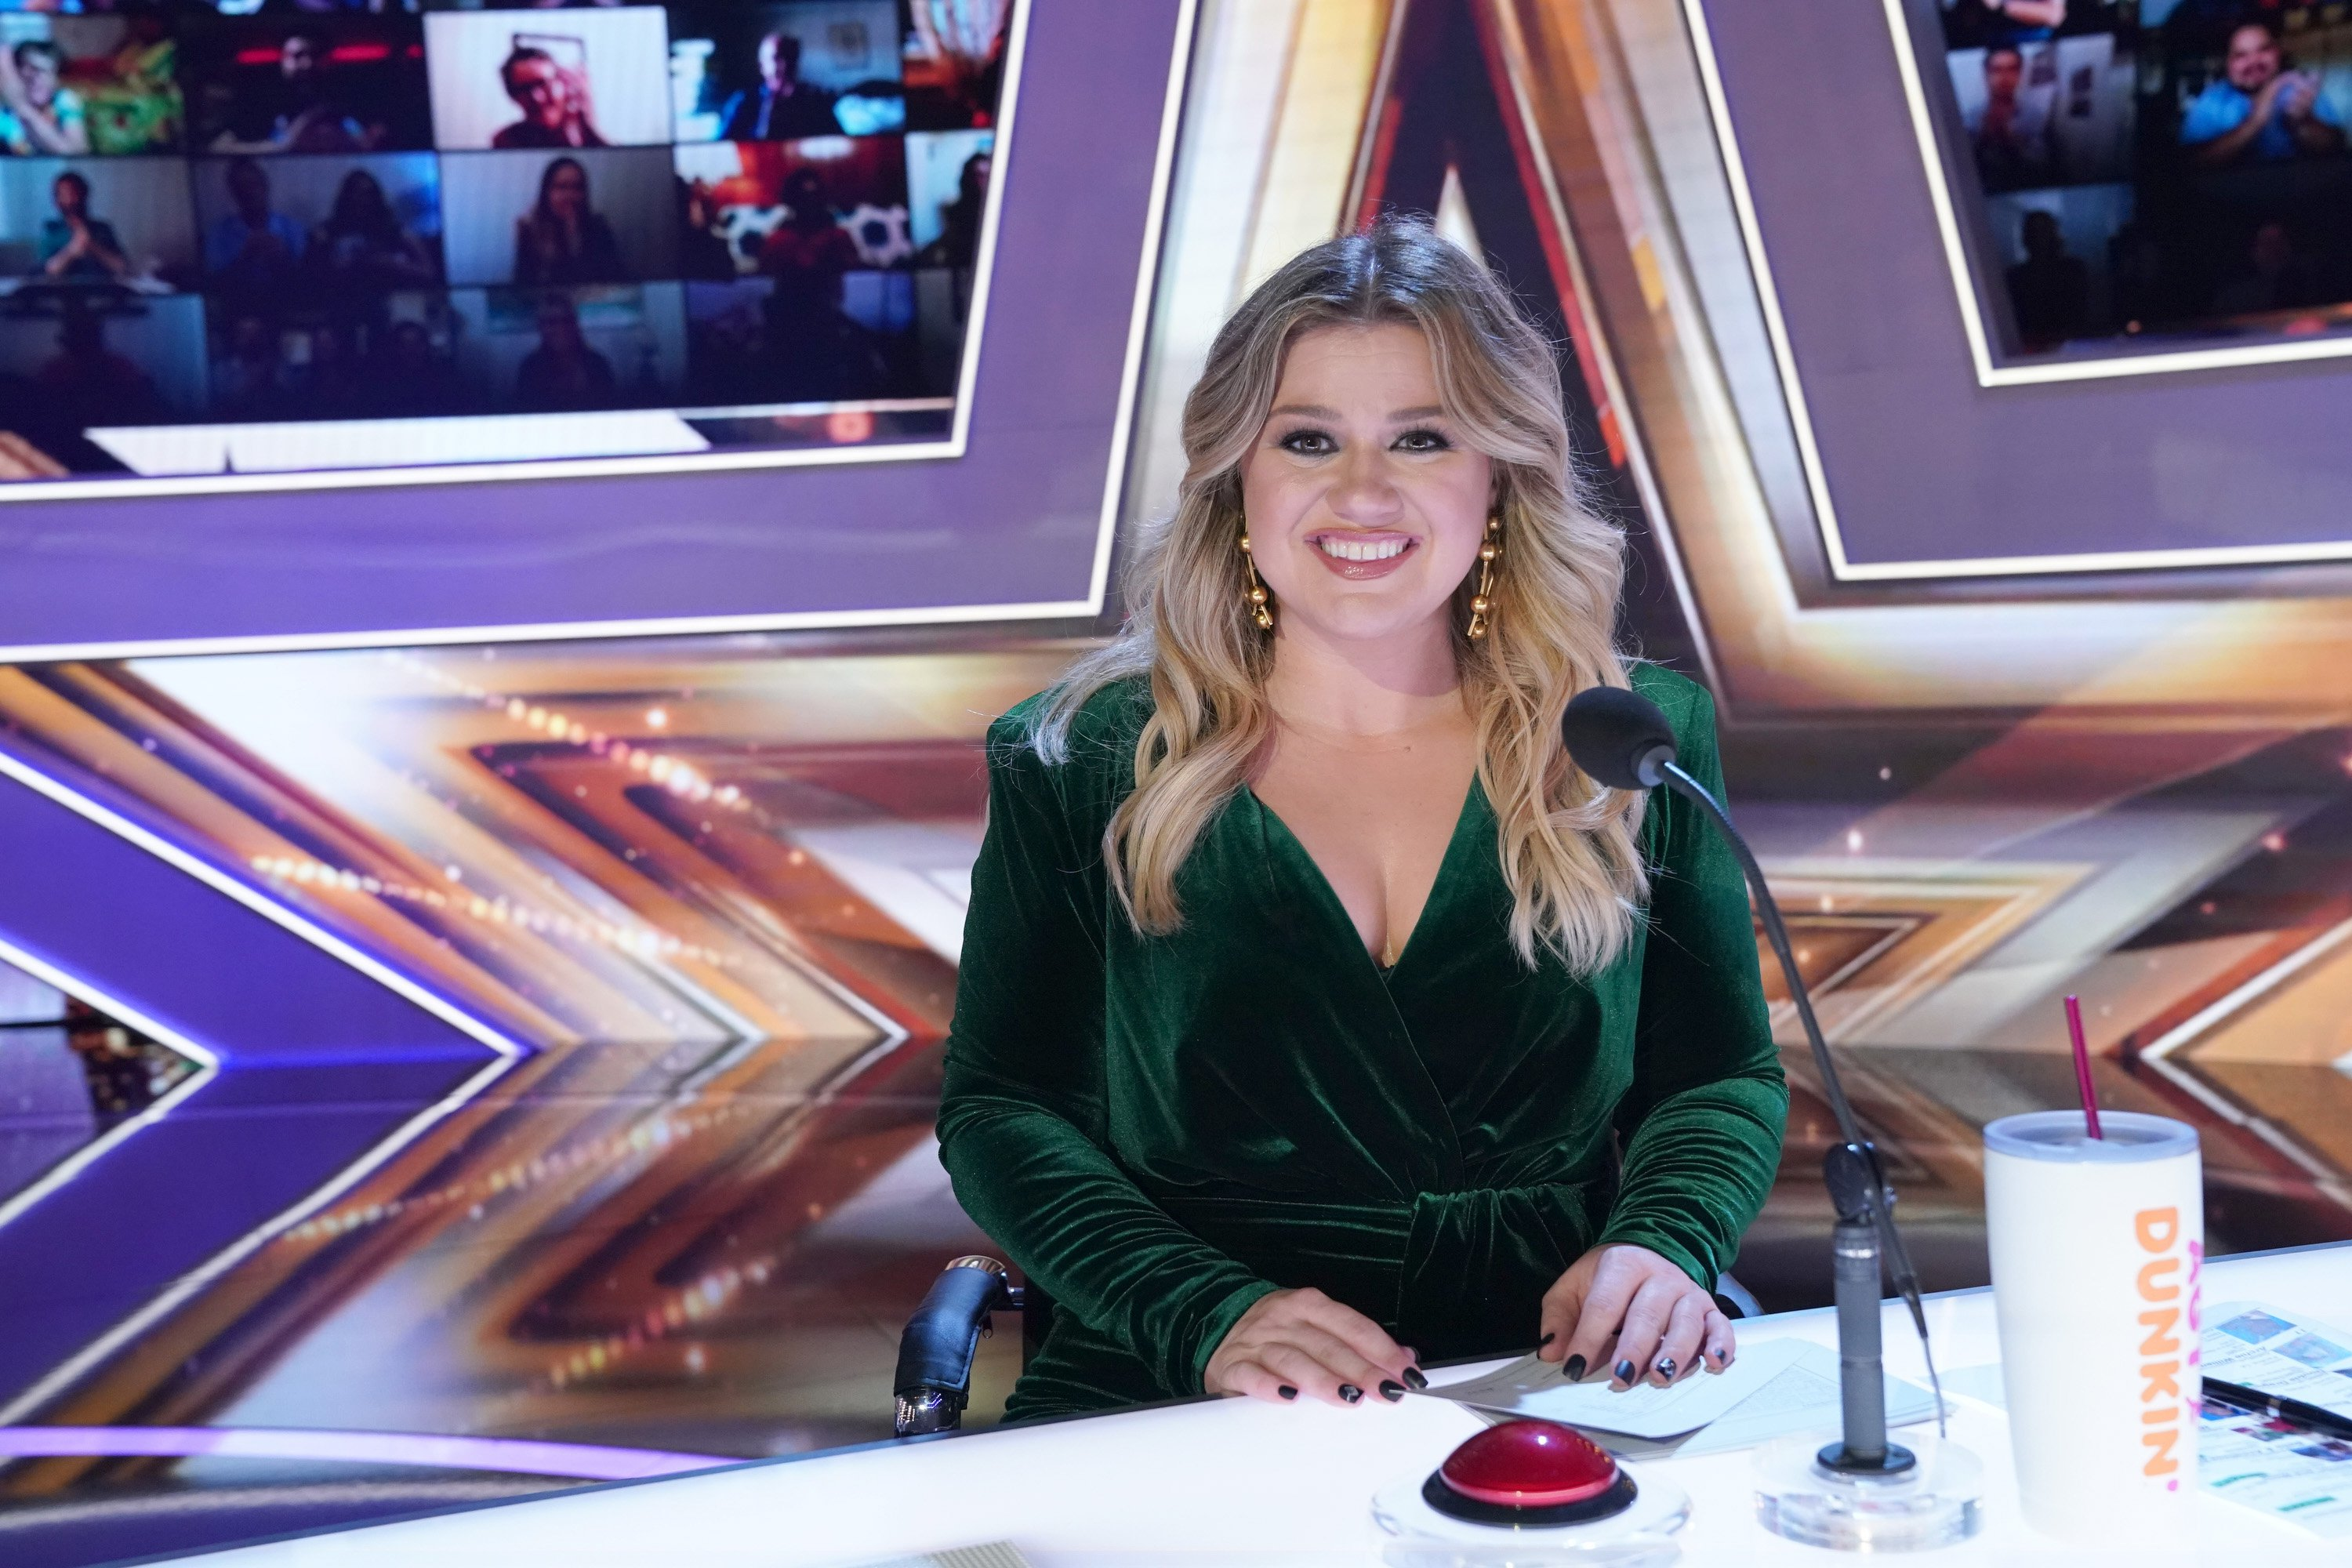 """Kelly Clarkson serving as a guest judge on """"America's Got Talent"""" on August 11, 2020. 